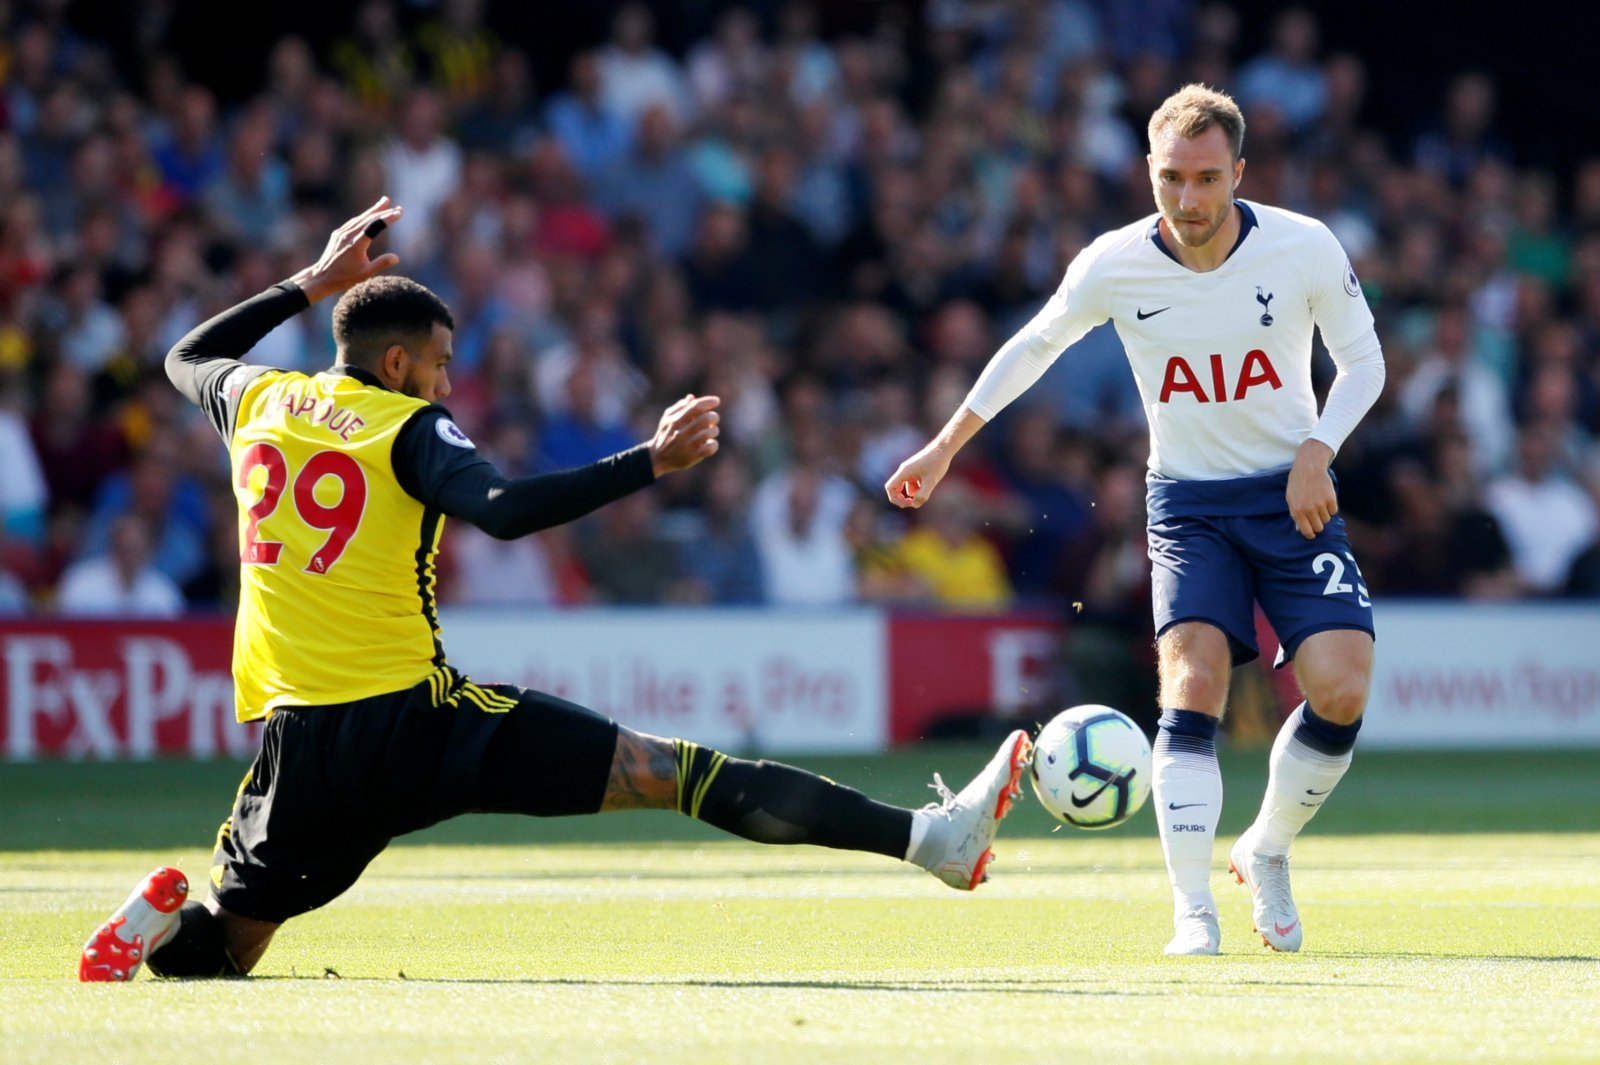 Some Tottenham fans were foolish to call for Eriksen to be dropped